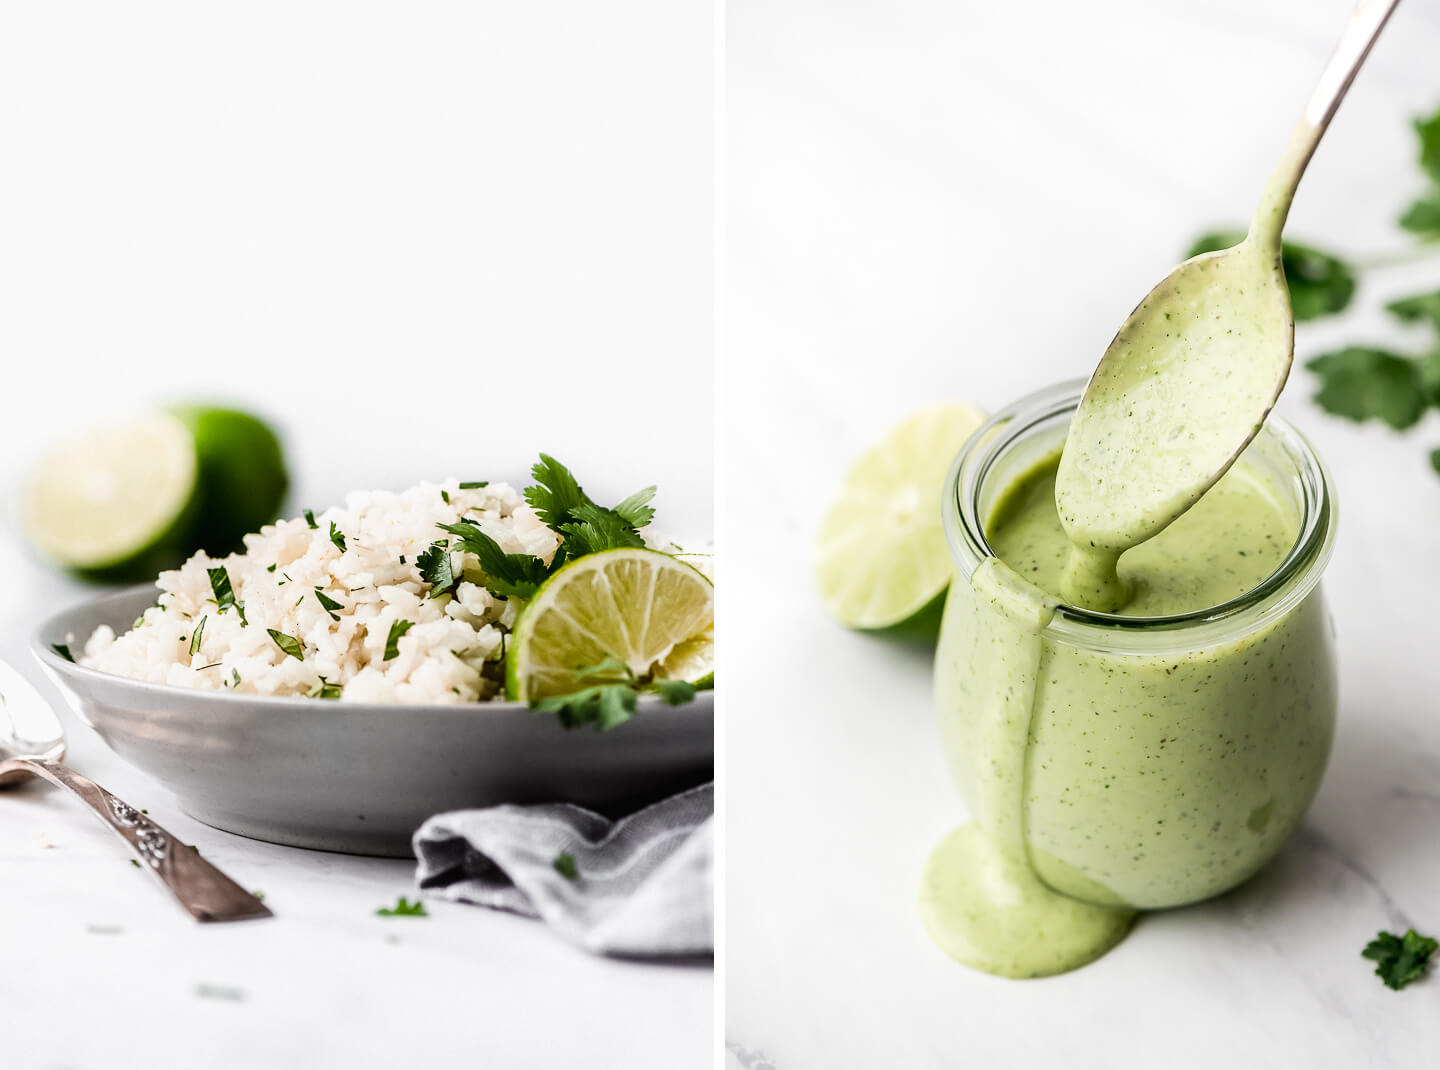 Diptych- Cilantro Lime Rice in a gray bowl with lime wedges in the side; a jar of Cilantro Lime dressing with a spoon lifting some out and letting it fall back into the jar.